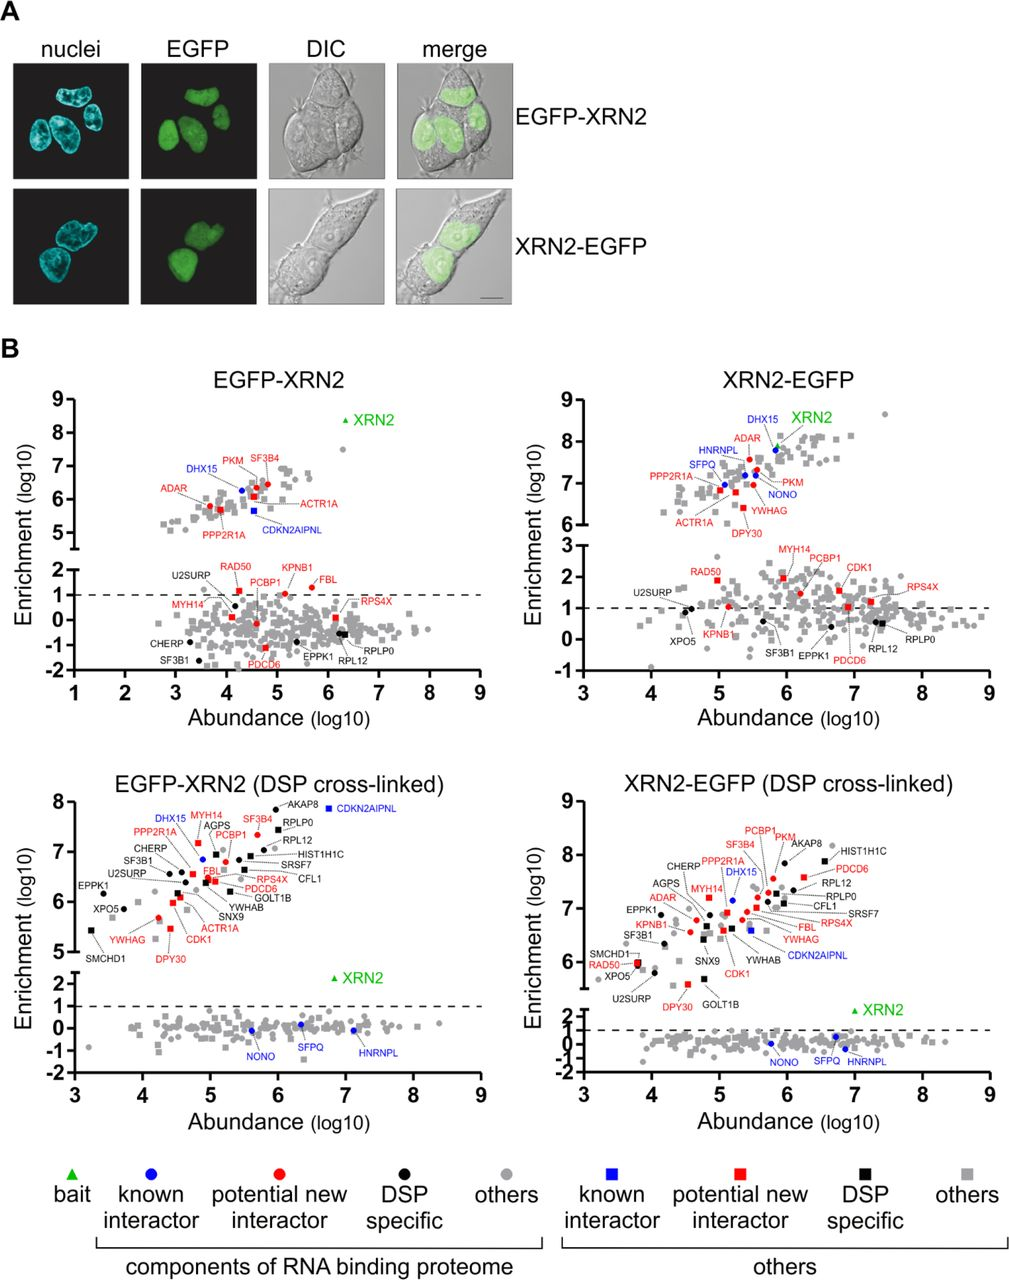 Versatile approach for functional analysis of human proteins and